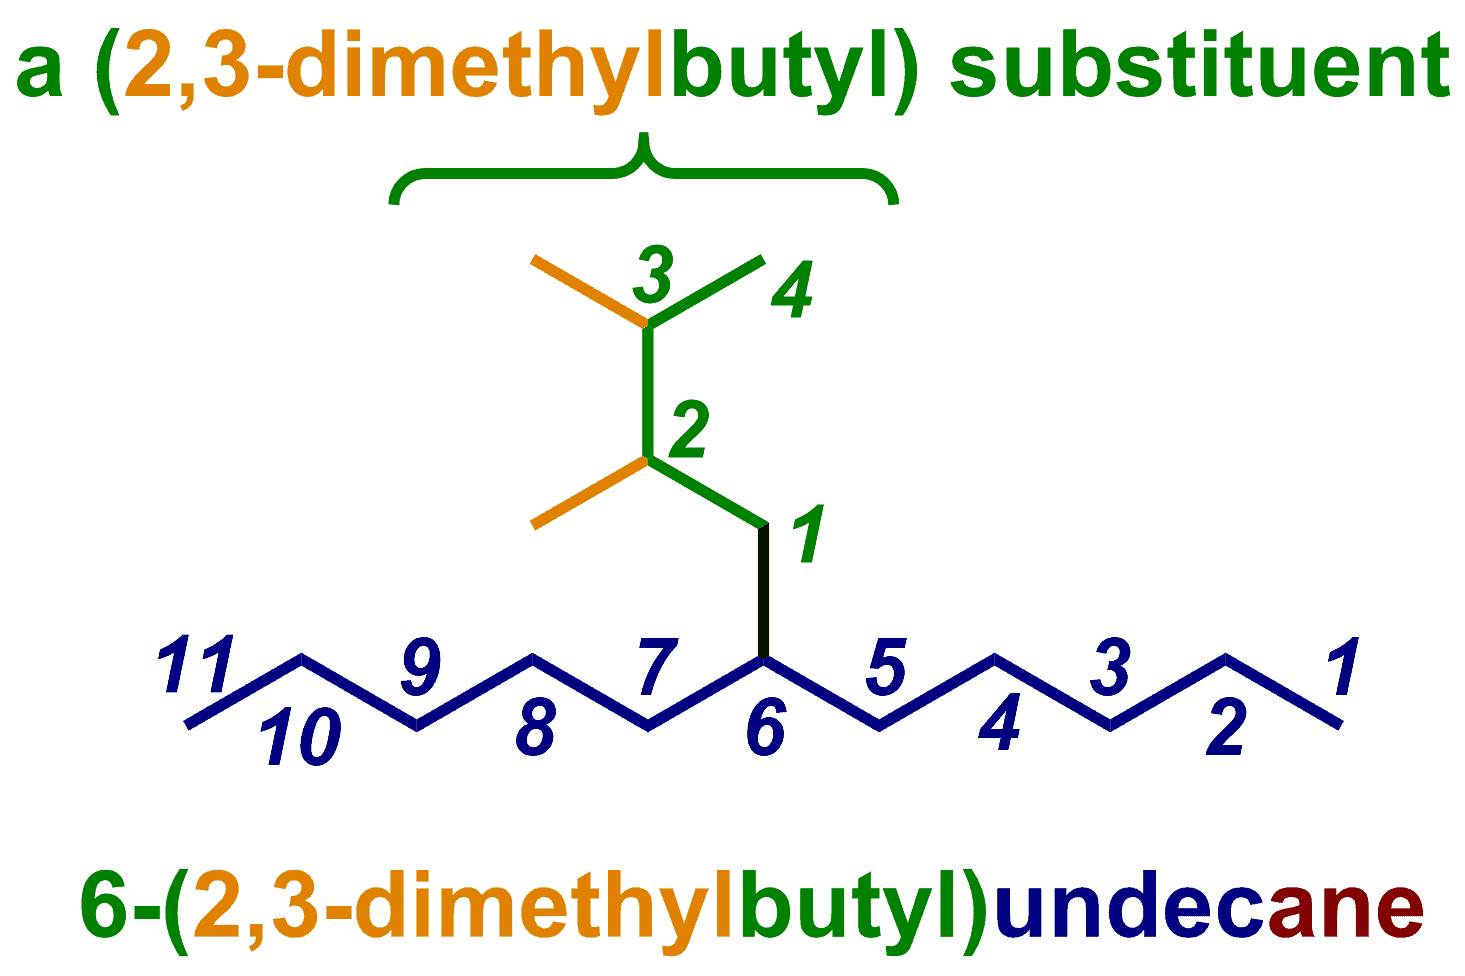 A branched substituent, attached via the terminal carbon